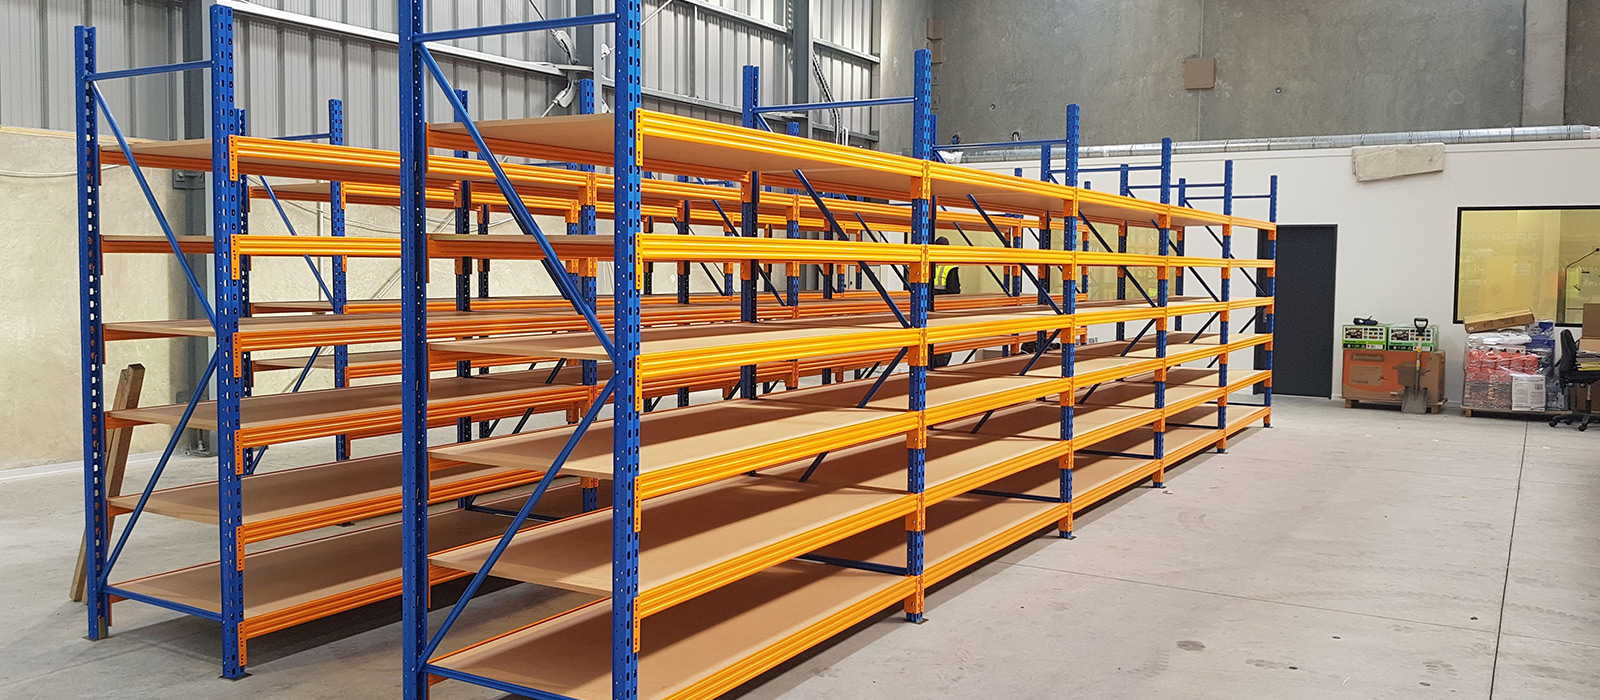 BNT Store Fitout, Industrial Shelving, STACK-iT Series Shelving, Picking Shelves, Parts Storage